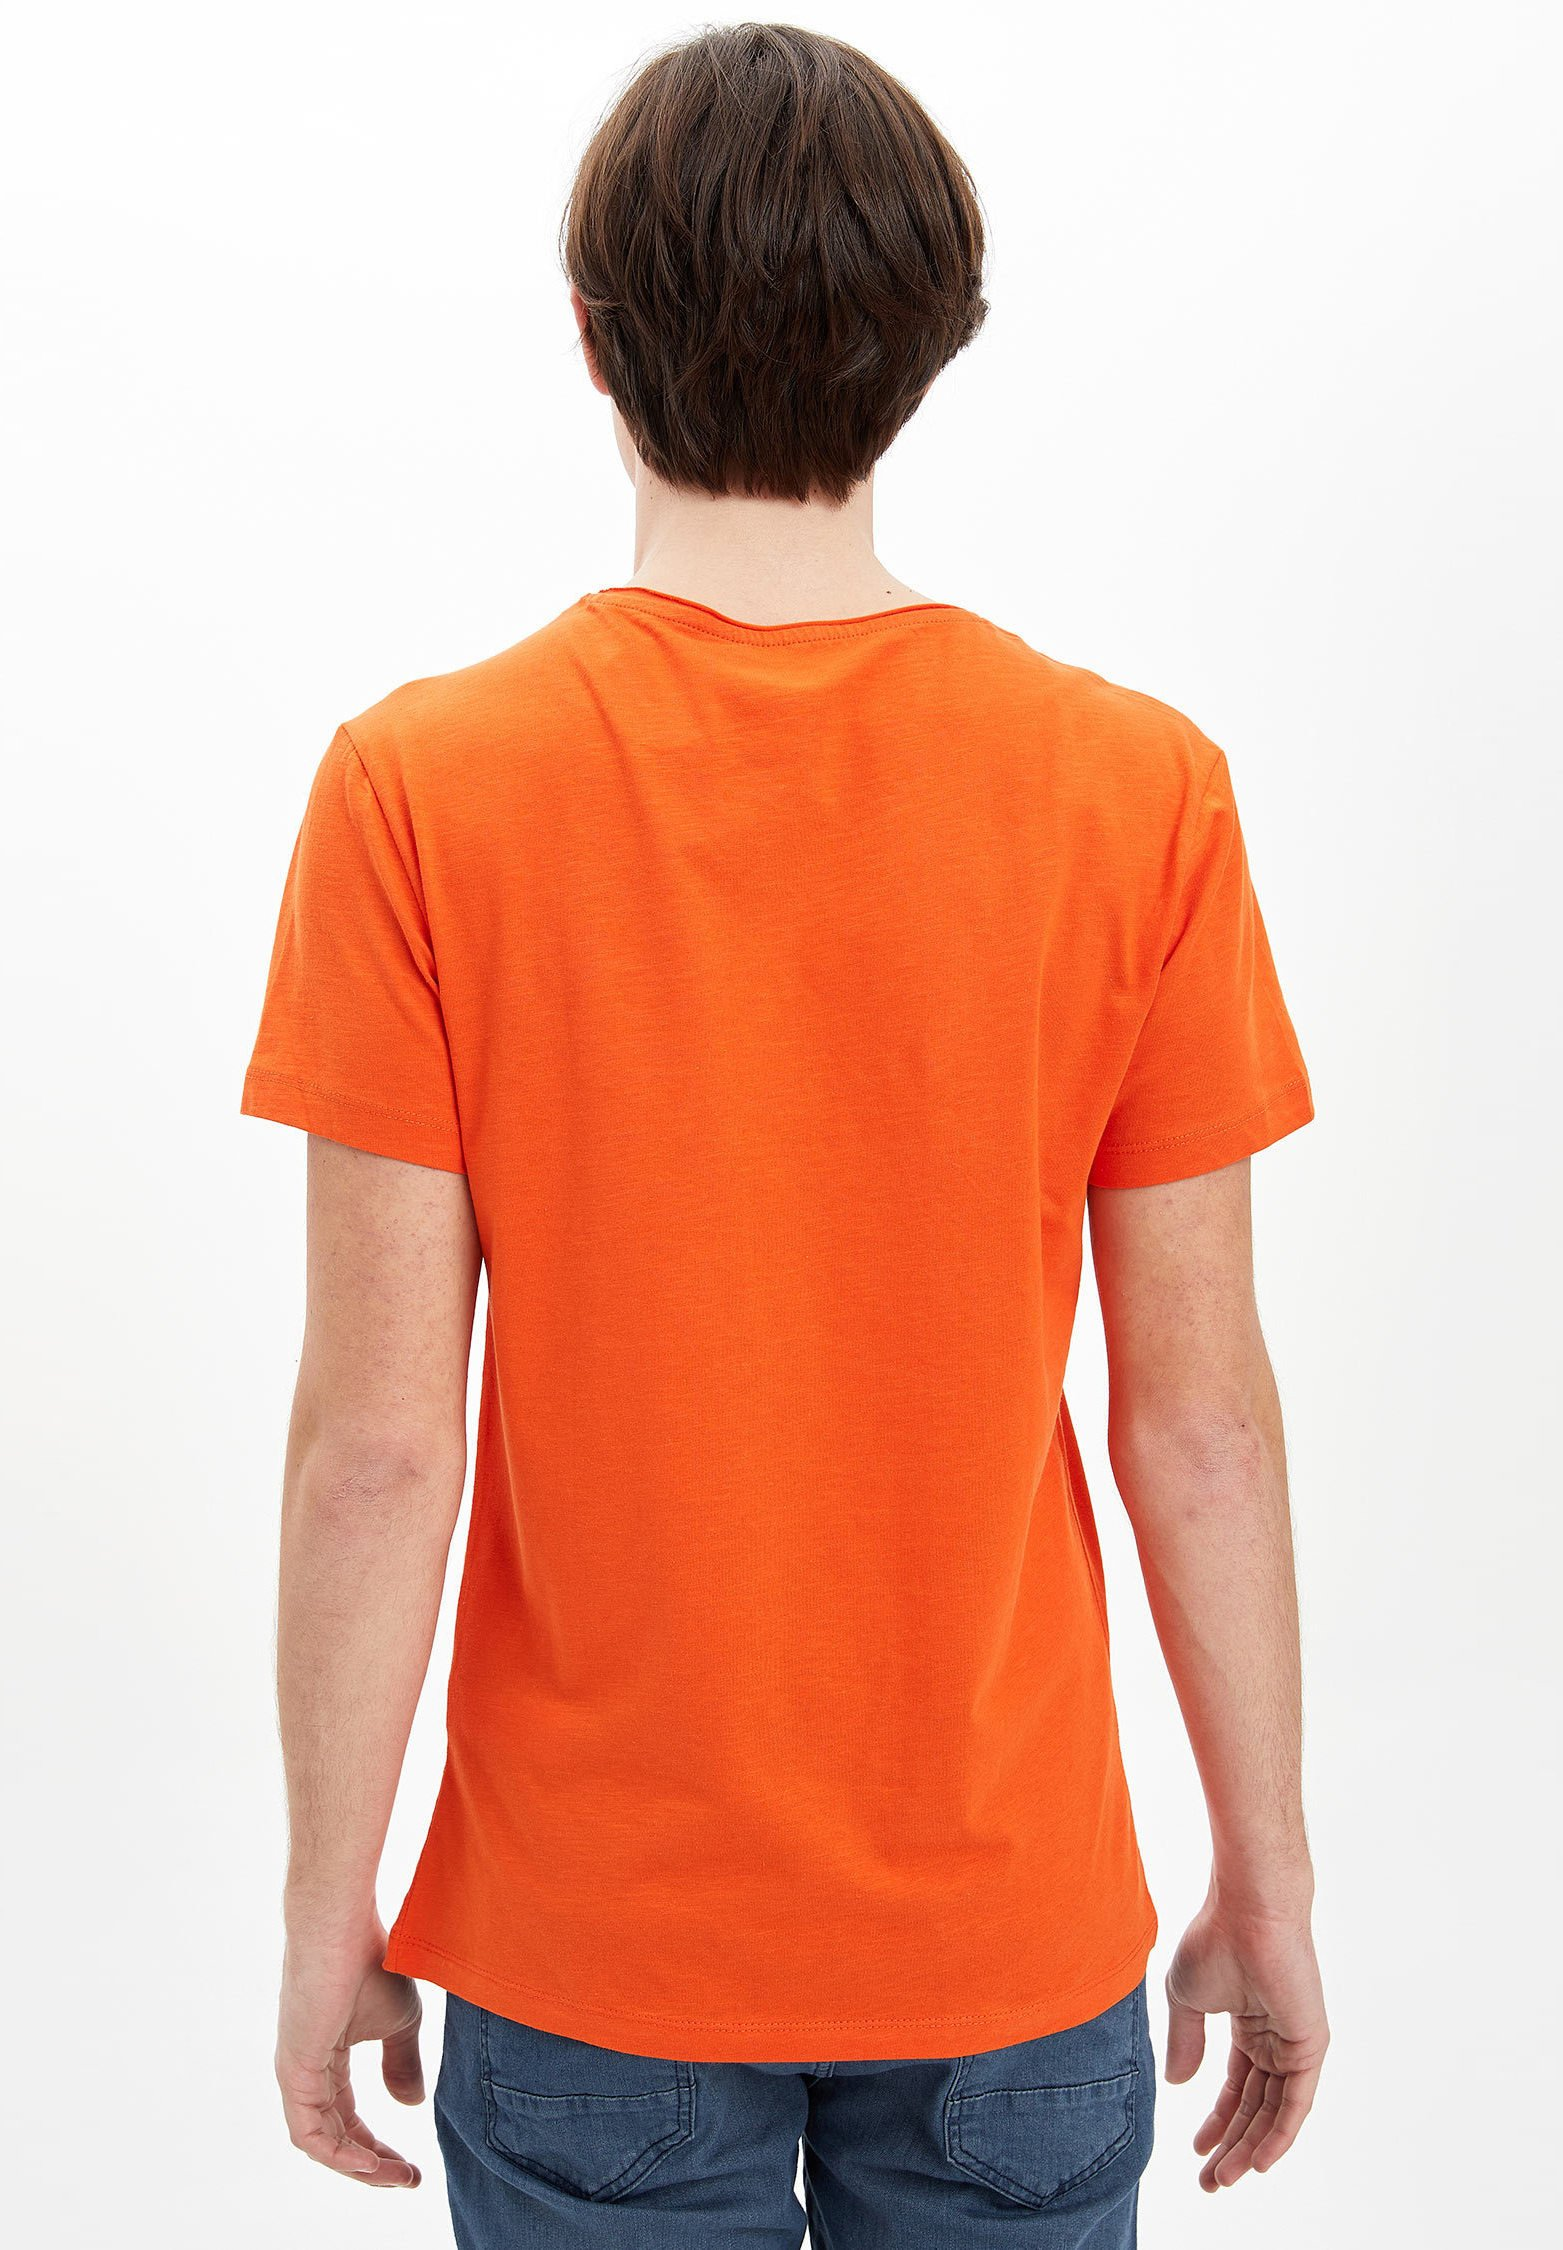 DeFacto Basic T-shirt - orange Q7jb0